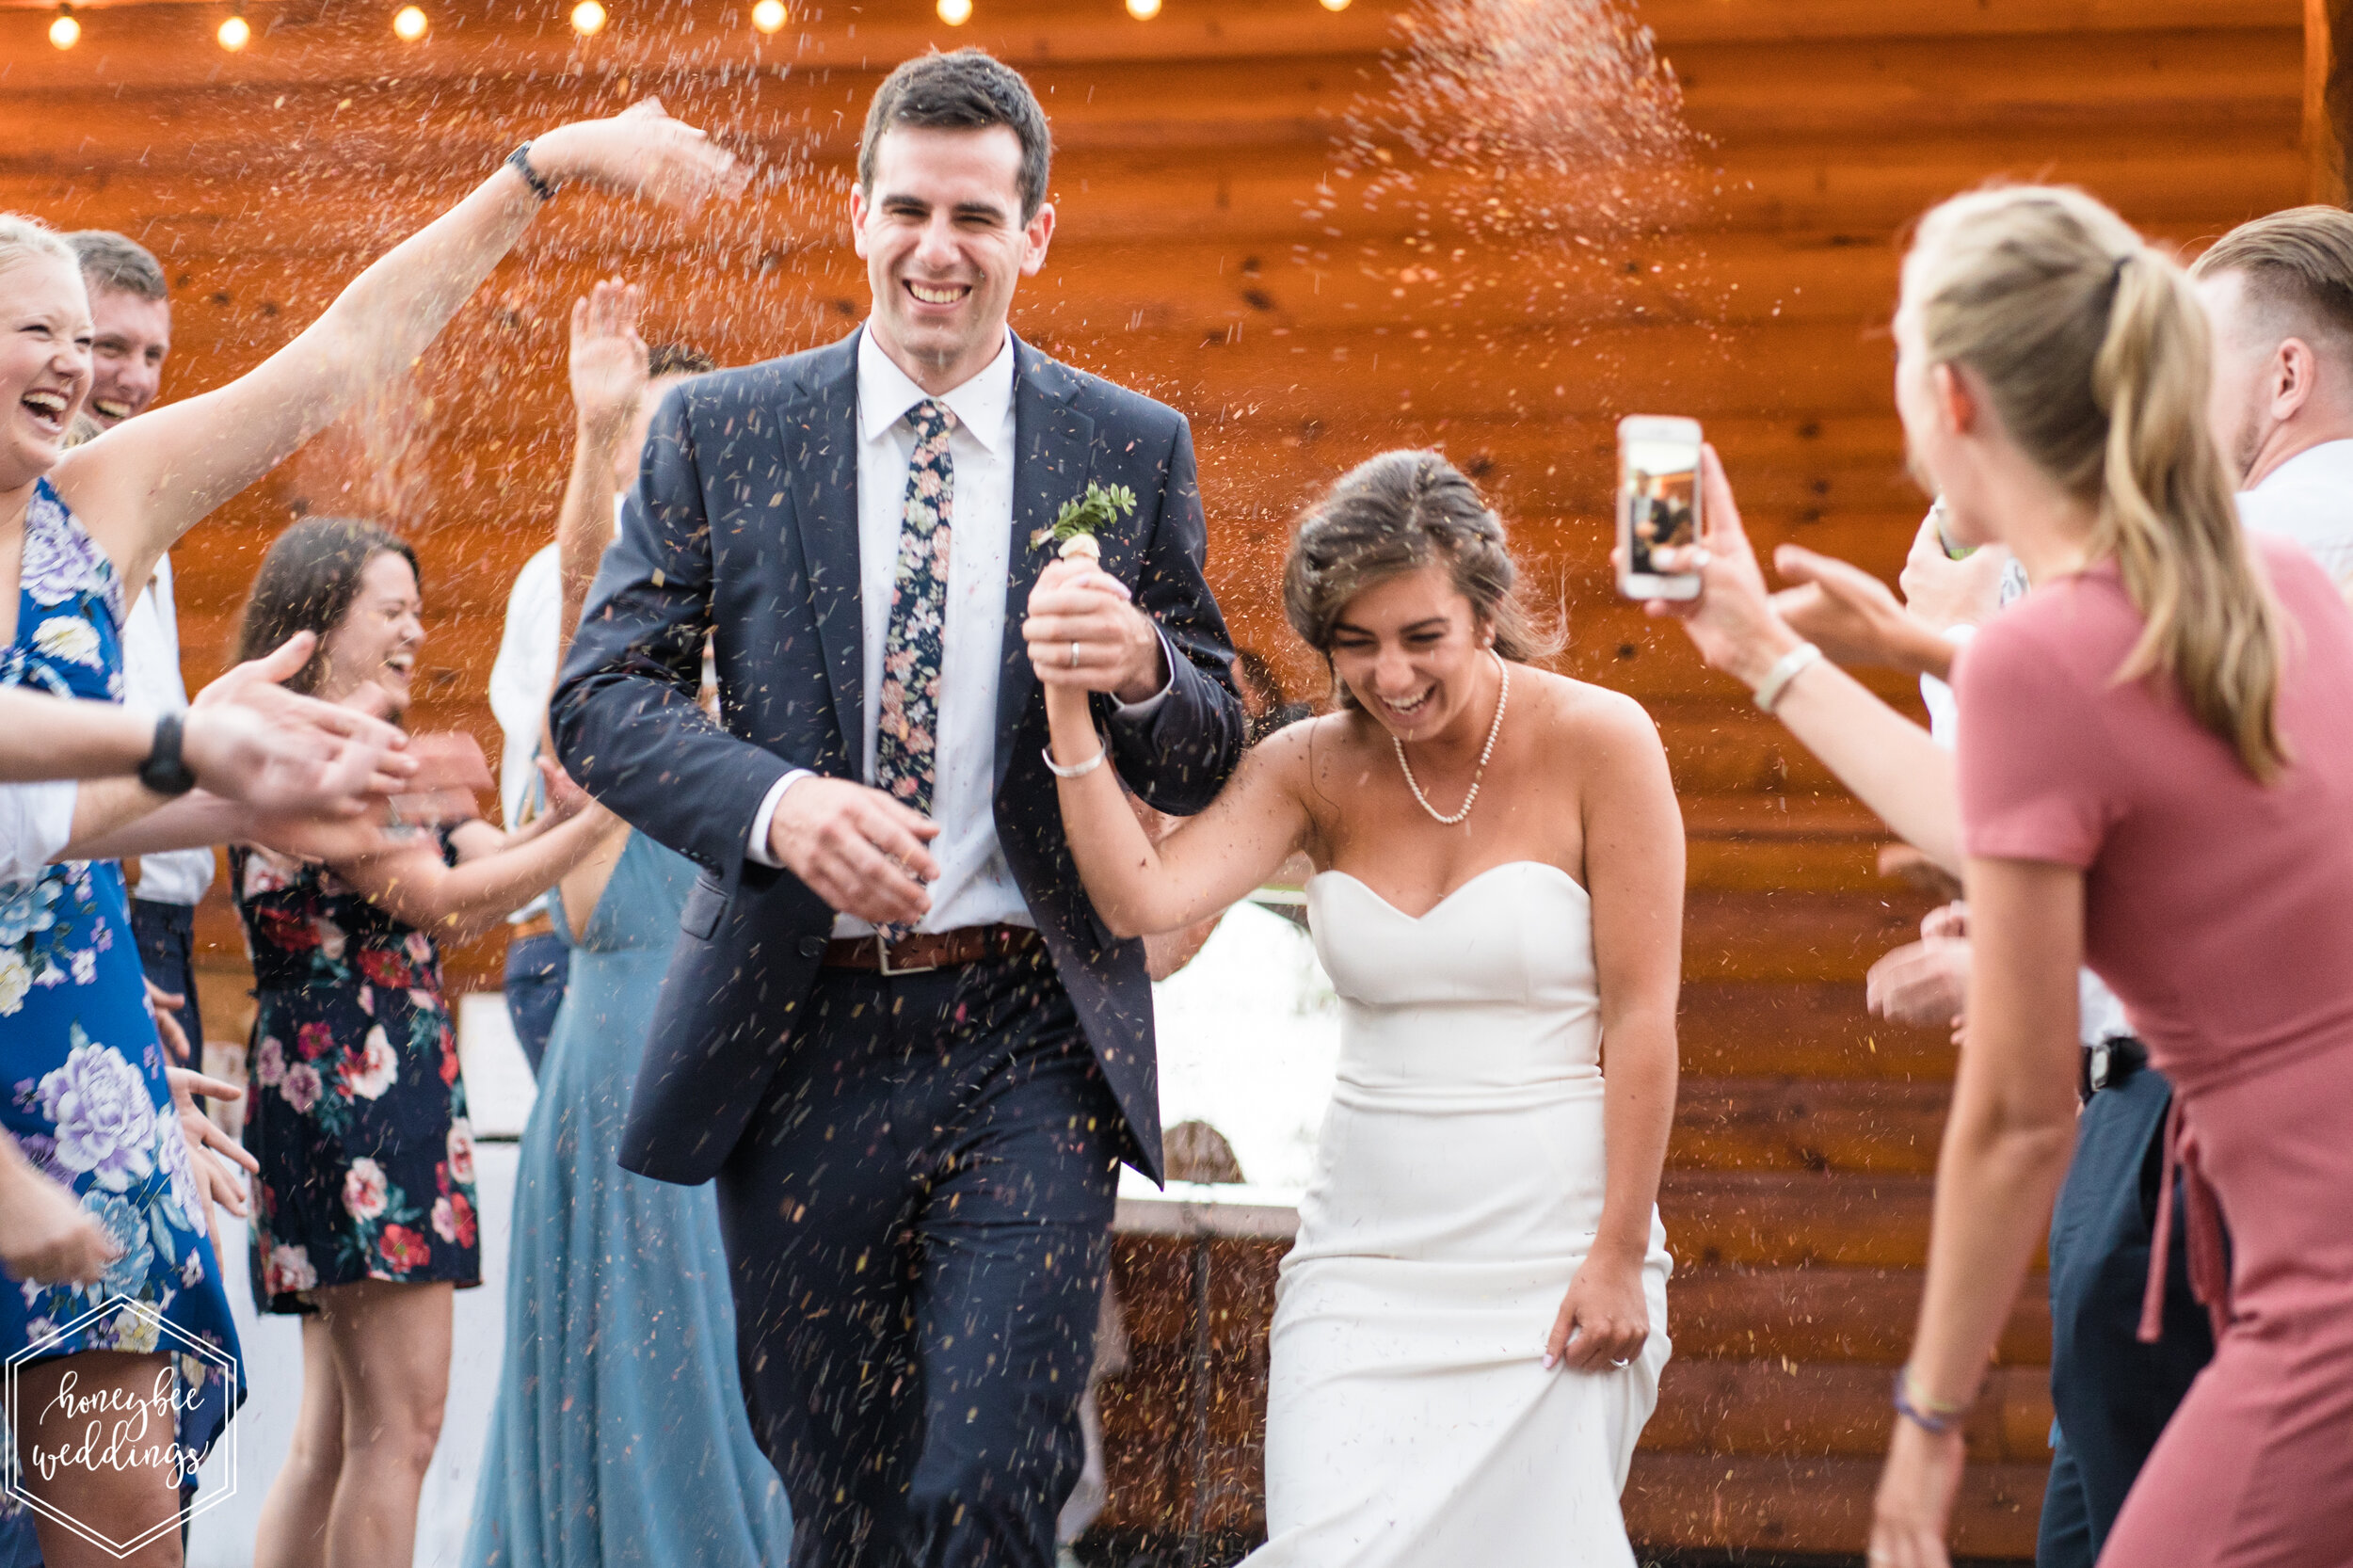 221Glacier National Park Wedding_Glacier Outdoor Center_Honeybee Weddings_Anna & Seth_July 21, 2019-380.jpg